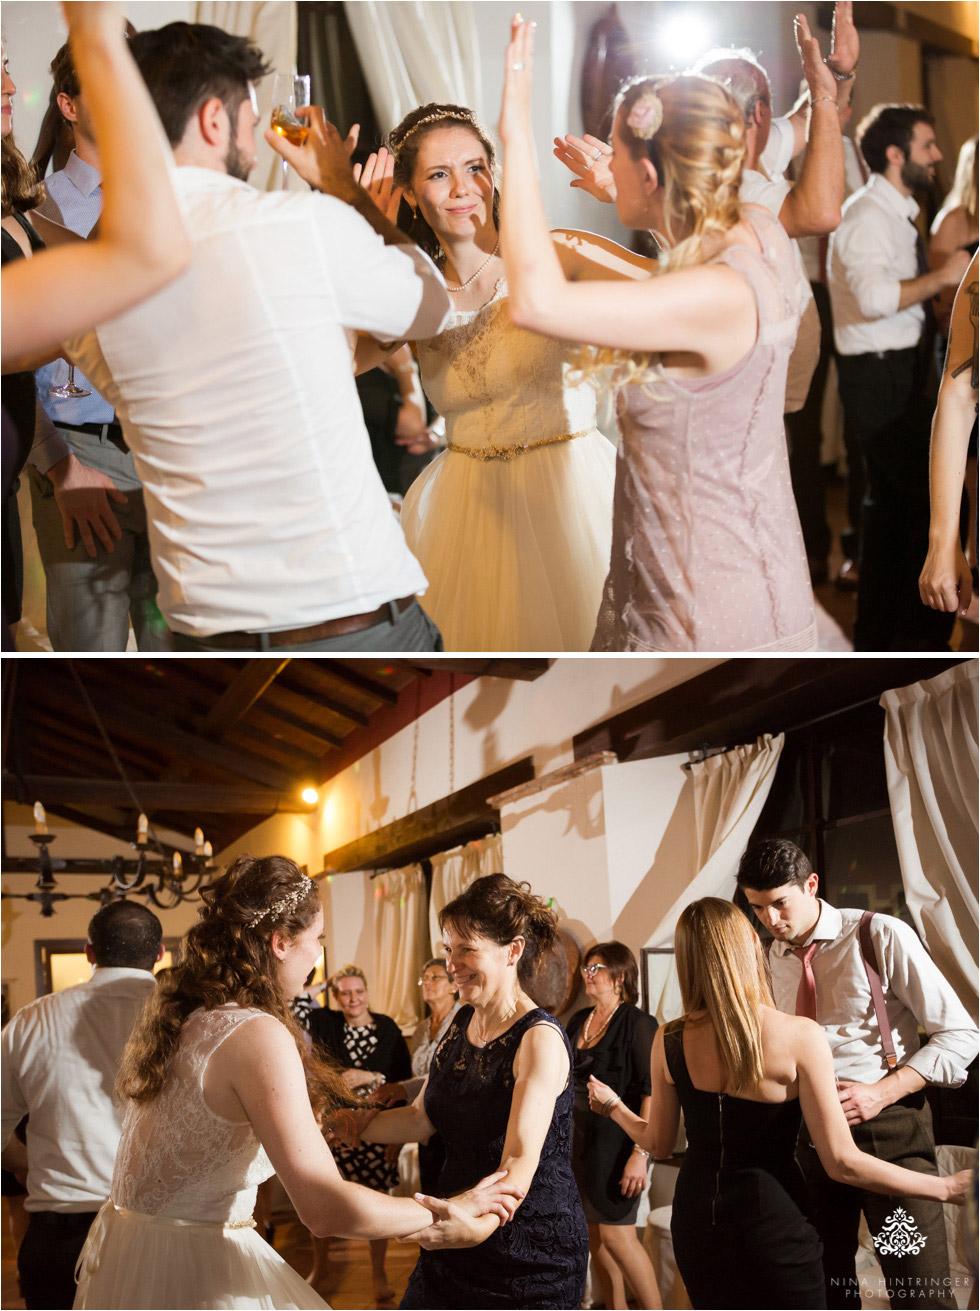 Dance, dance, dance at Villa Damiani in Bassano del Grappa, Italy - Blog of Nina Hintringer Photography - Wedding Photography, Wedding Reportage and Destination Weddings